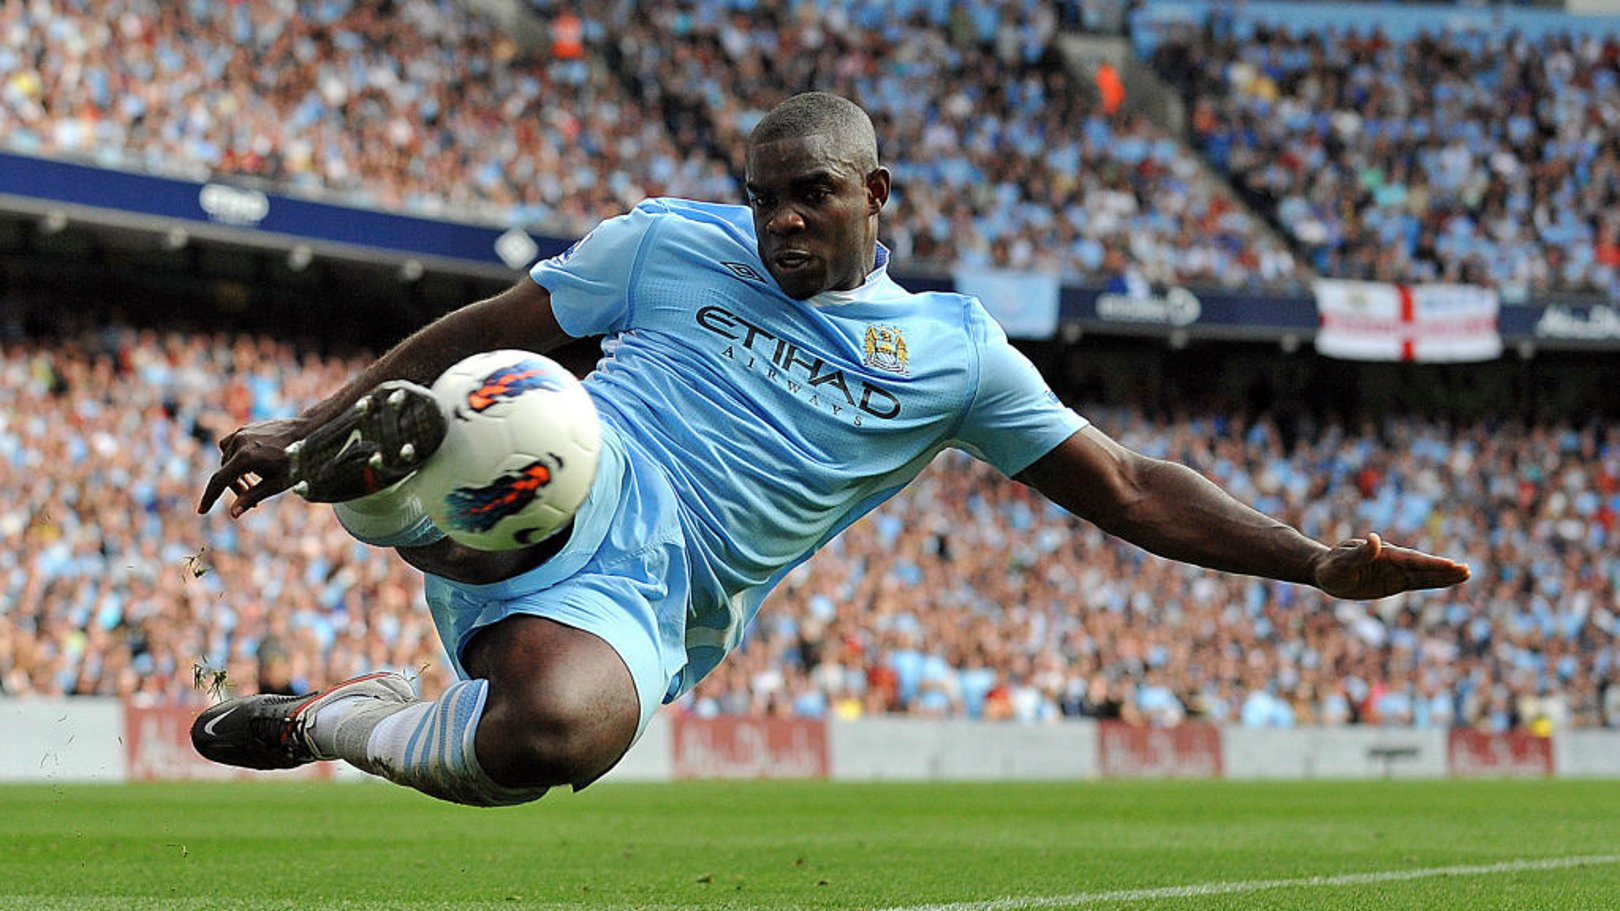 TRUE BLUE: Micah Richards in the thick of the action during his City career